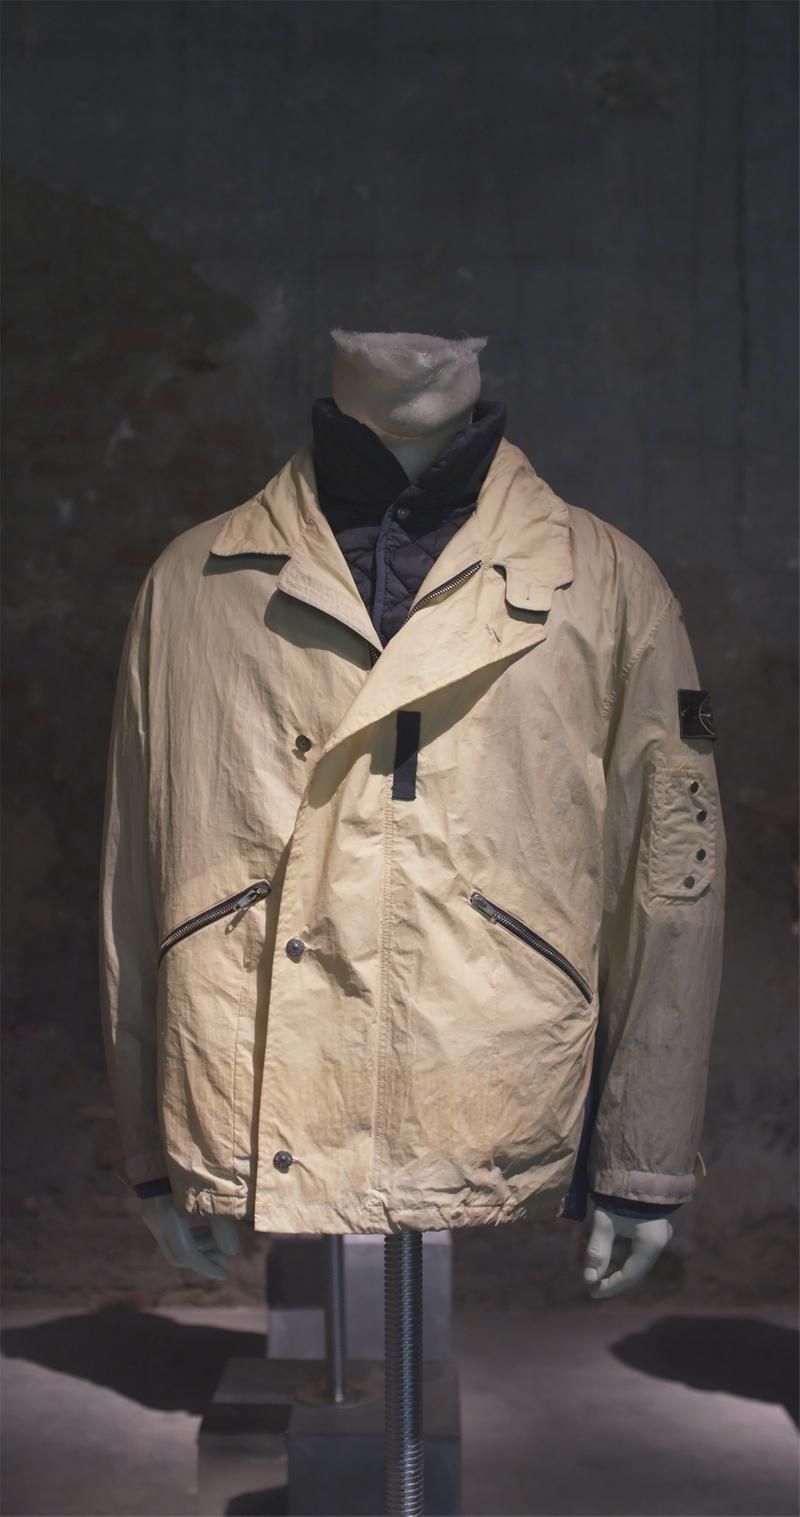 Off white jacket with button closure and notched tab collar, zipper pockets and buttoned detail on the upper left sleeve, displayed on a mannequin bust